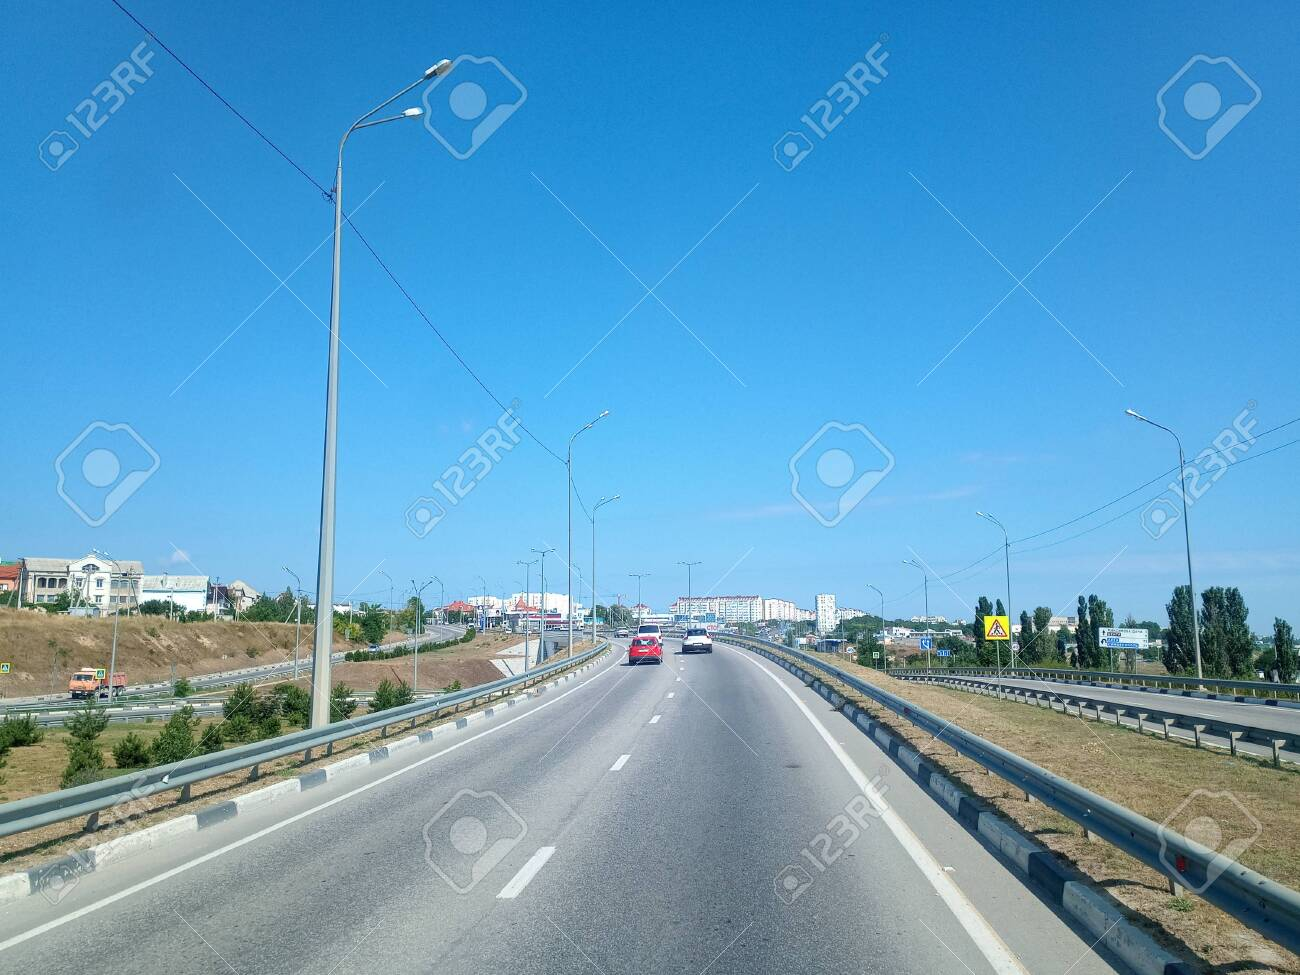 Crimean landscapes, driving on the roads of Crimea. Suburbs and villages and fields and trails of The Crimea. - 147636356